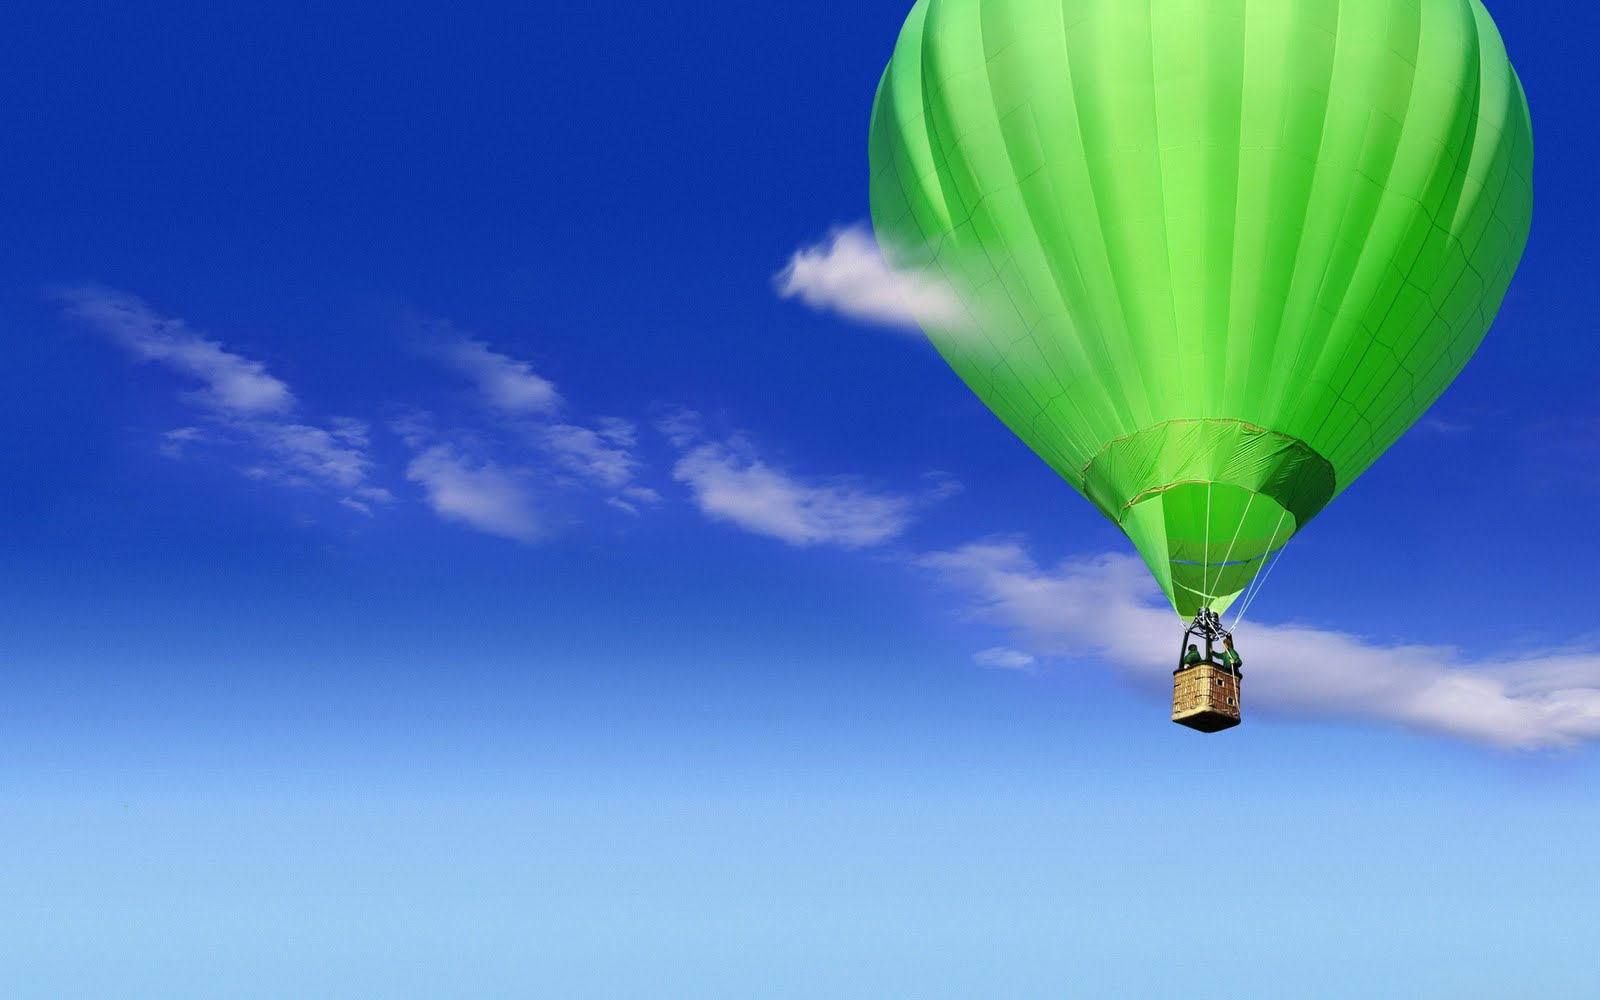 http://4.bp.blogspot.com/-U50dT124xrk/TeC2Mug7mxI/AAAAAAAAAZk/dc81HPlt0Pw/s1600/809-hot-air-balloon-wallpaper.jpg